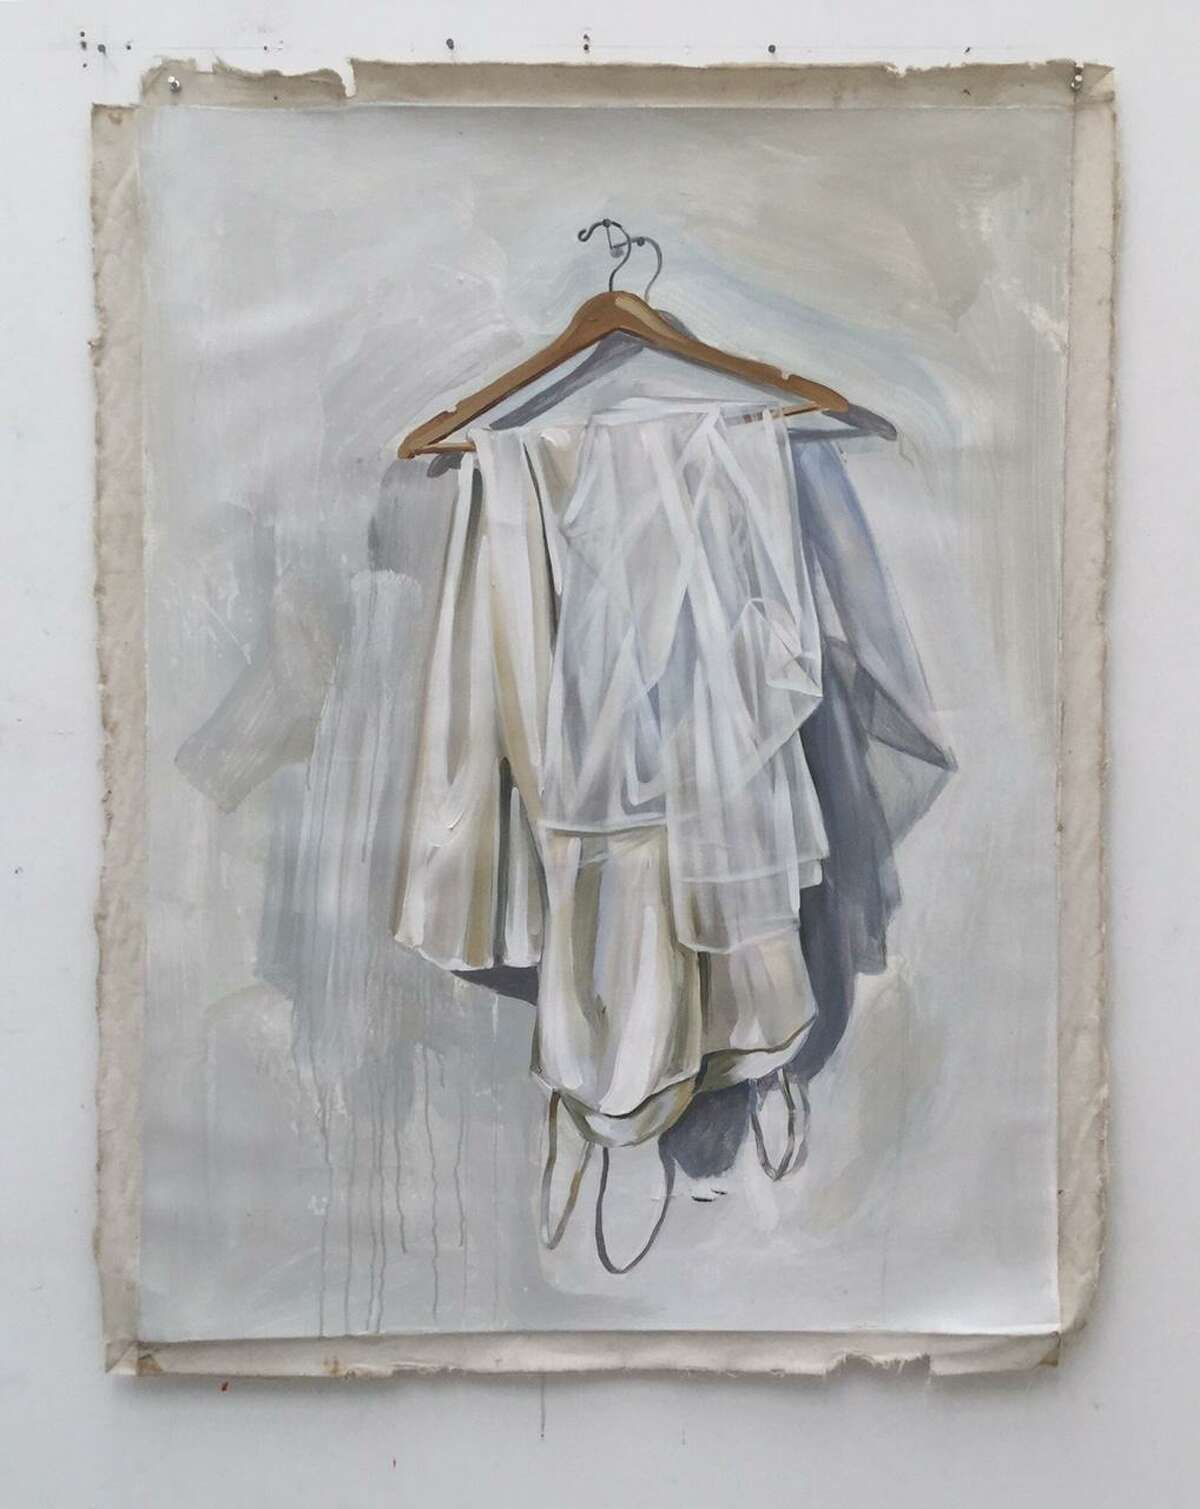 'Wedding Gown' painting, as recovered from the Bay